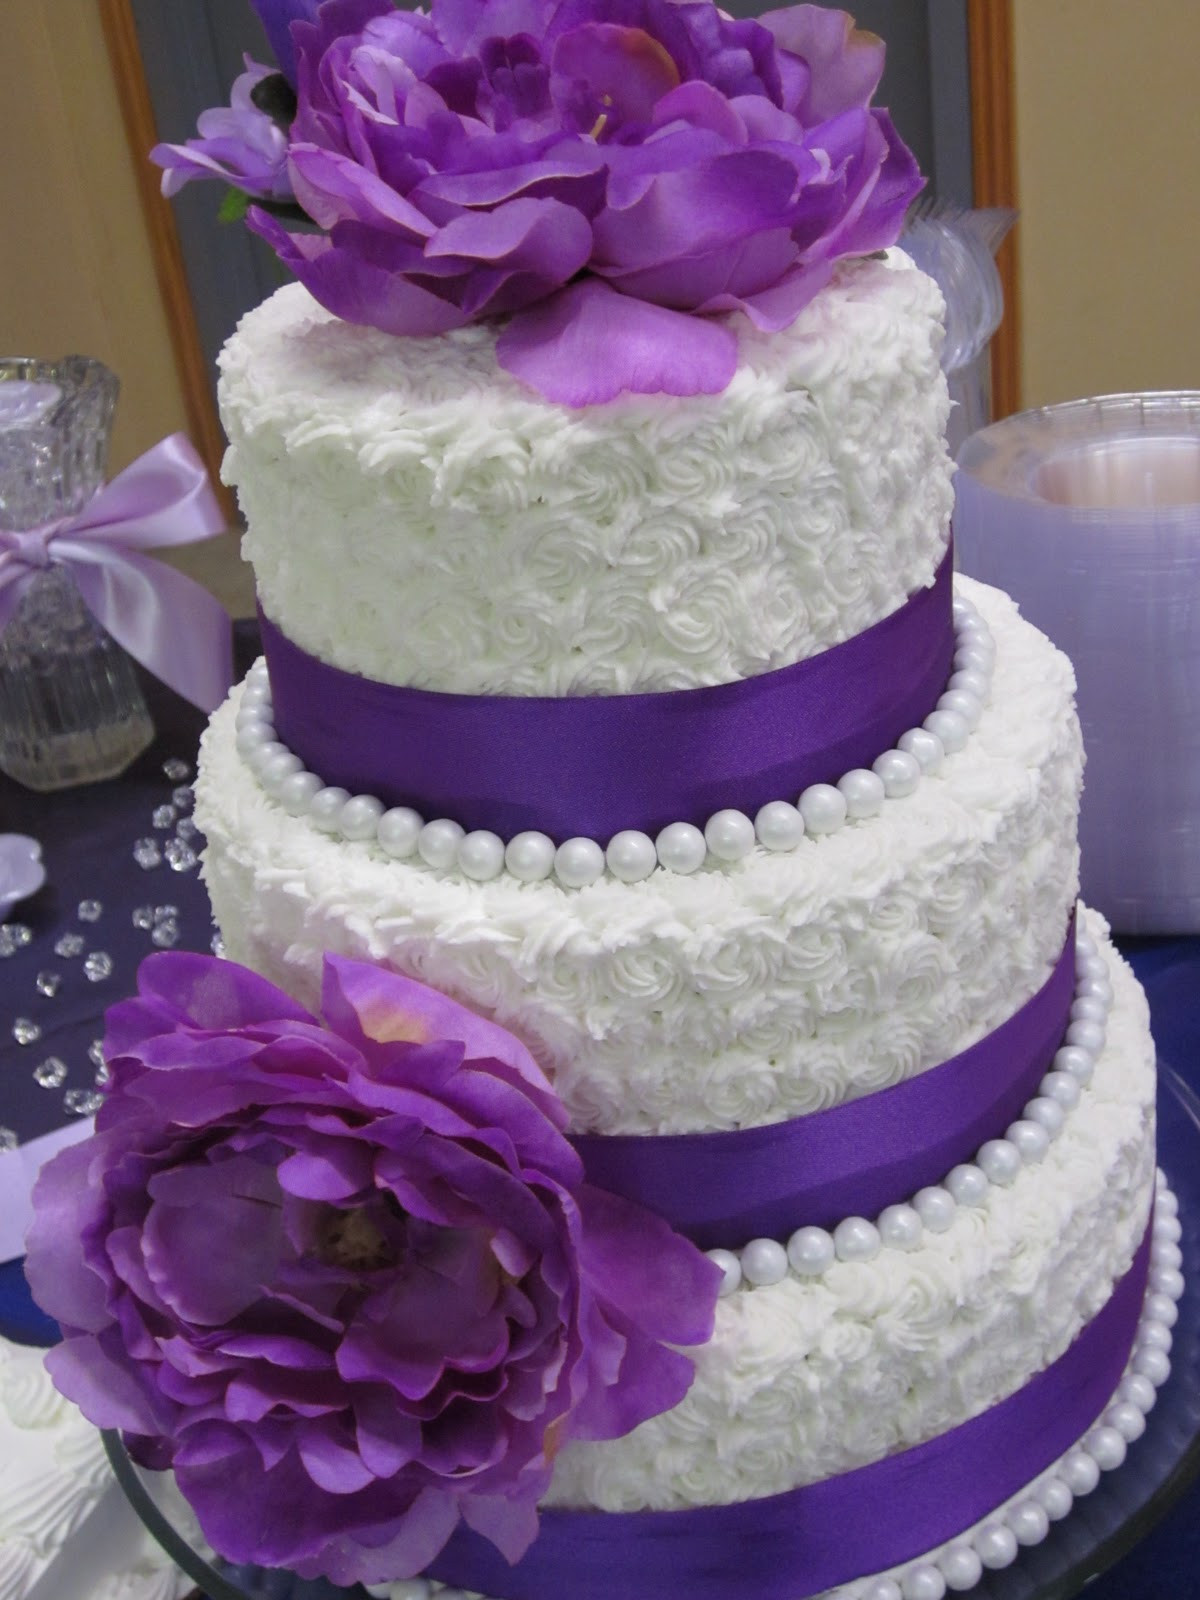 Gluten Free Wedding Cake Recipe  Cupcakemobster Gluten Free Wedding Cake